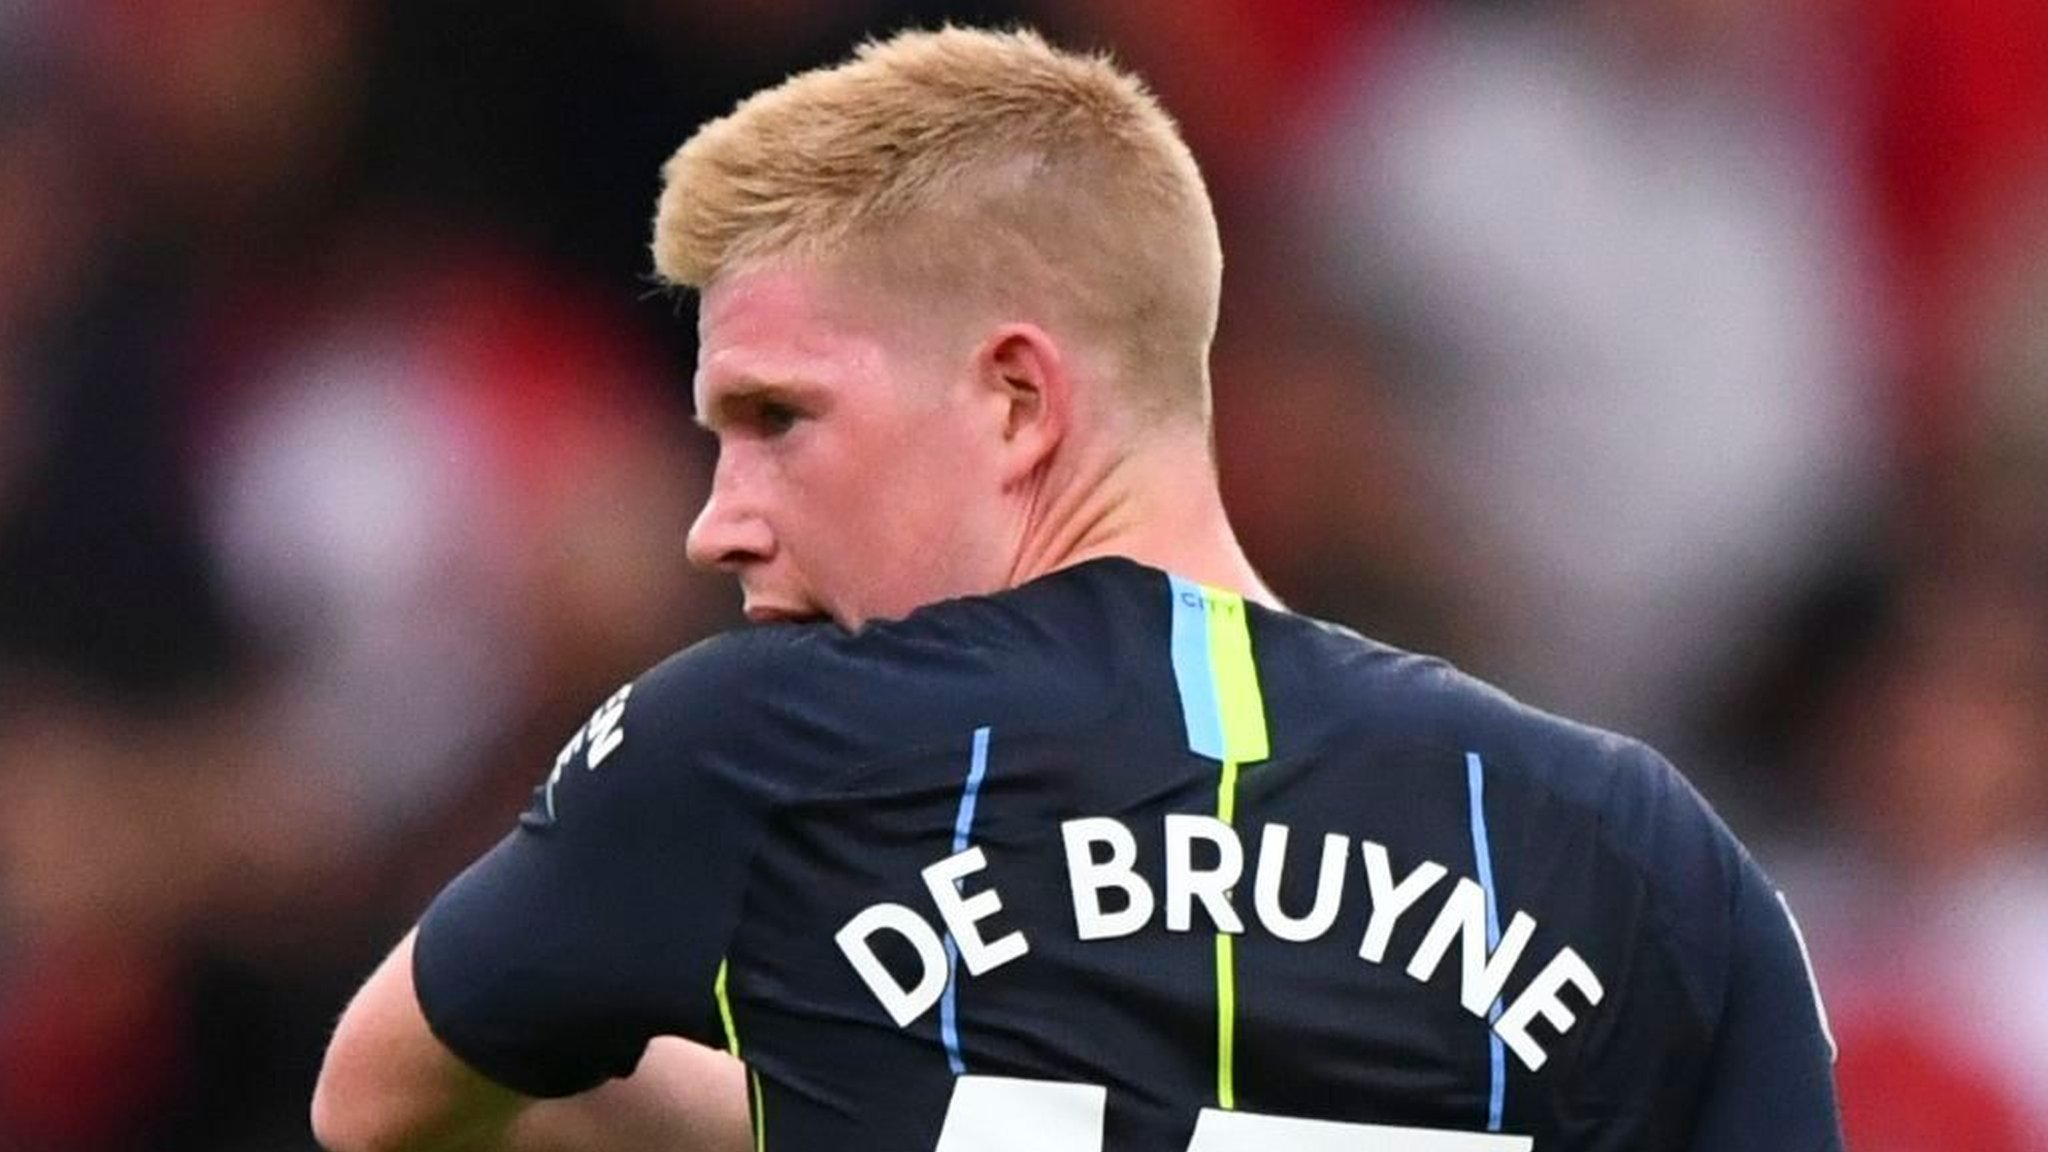 Kevin De Bruyne Man City Midfielder Suffers Knee Injury In Training